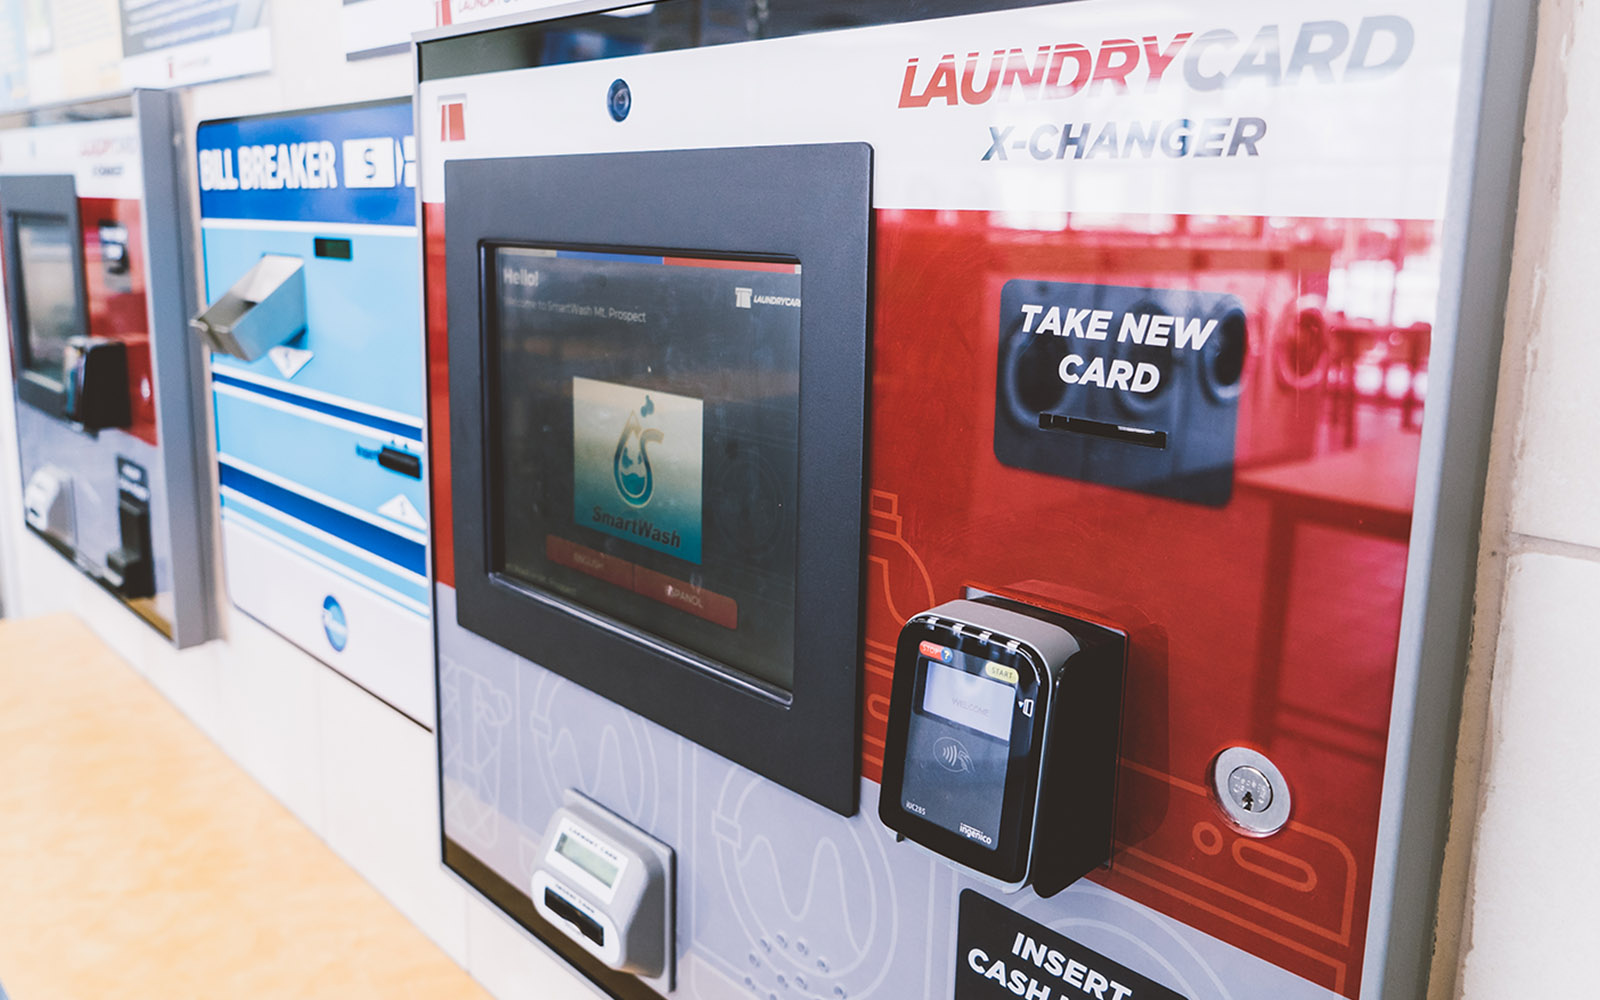 Laundrycard Holistic Laundry Management System Card Only